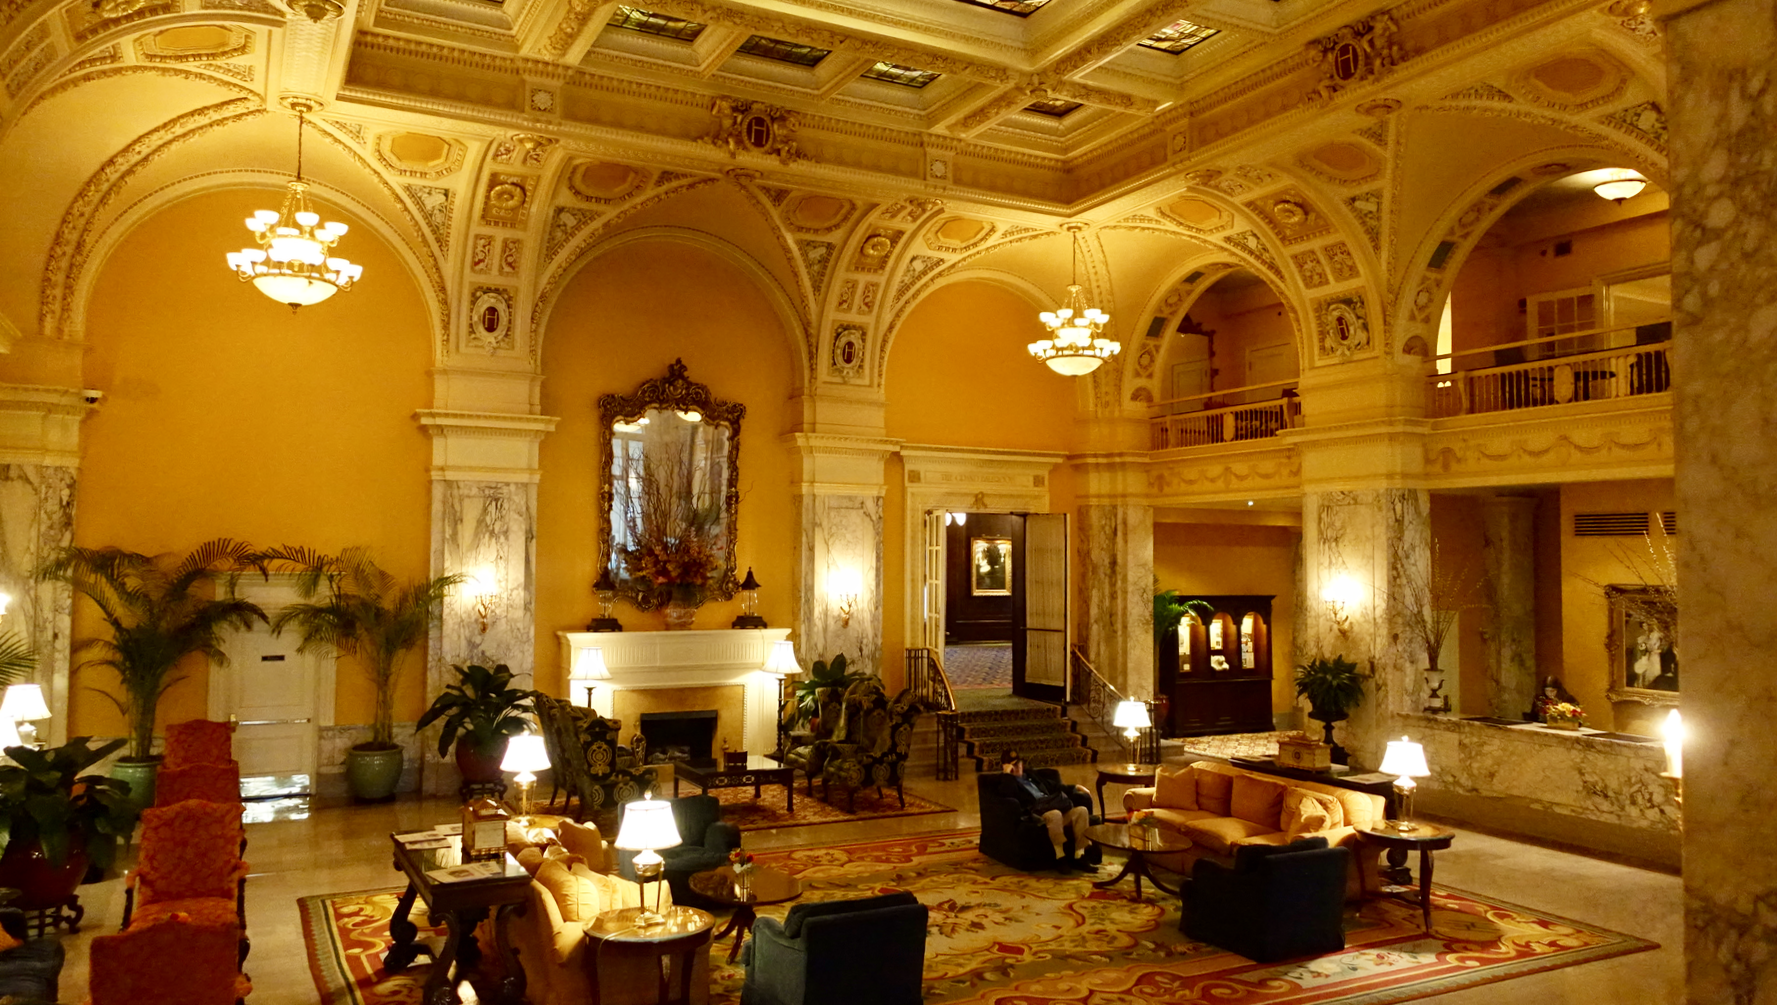 Nashville's 1908 Hermitage Hotel is a reminder of the elegance and grandeur of the past. Calgary's equivalent would be the 1914 Fairmont Palliser Hotel